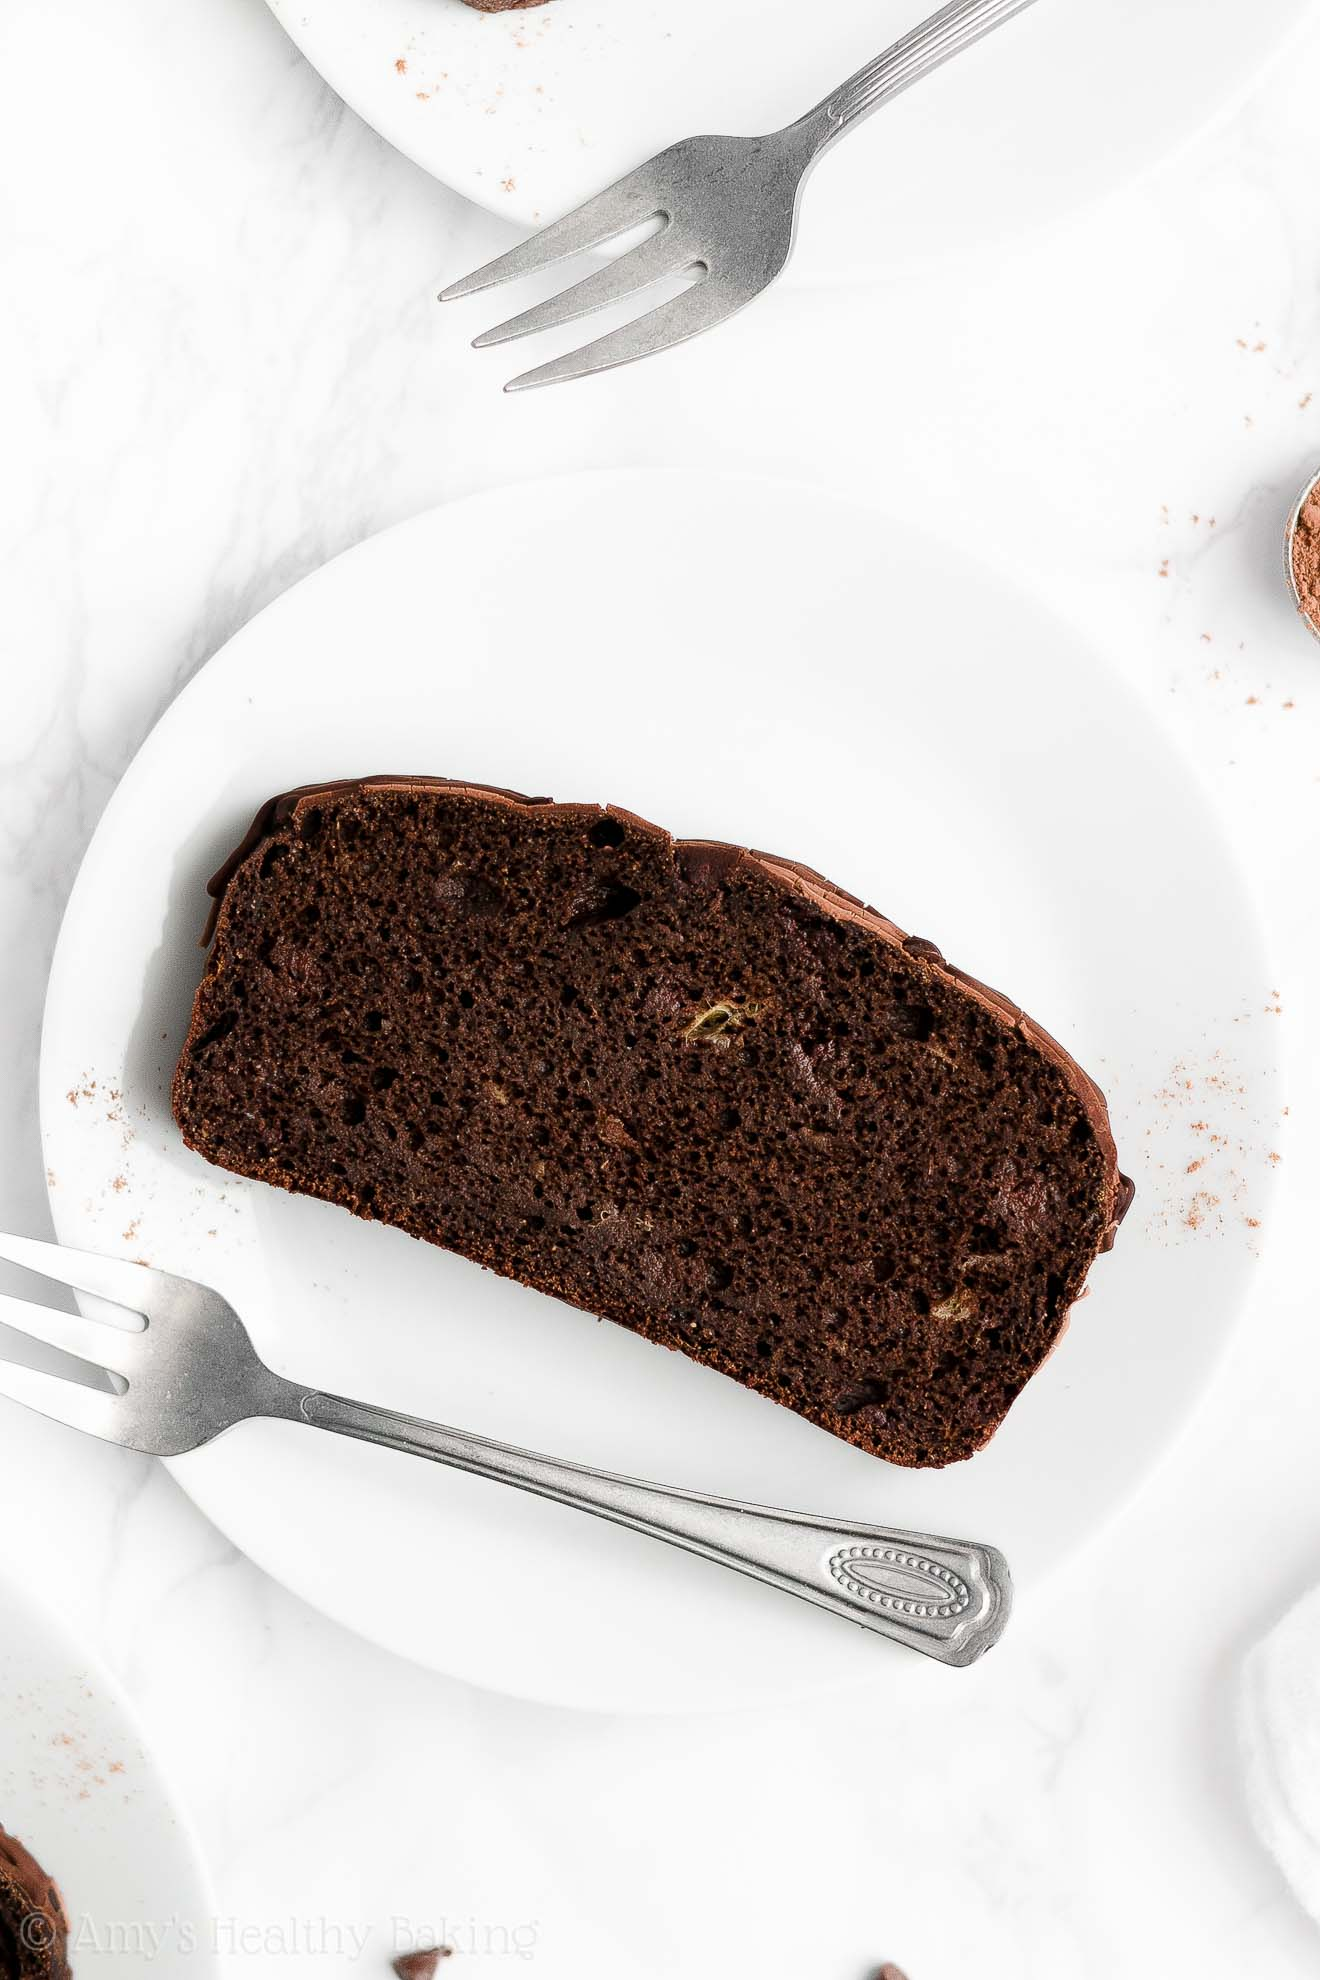 BEST EVER Healthy Clean Eating Moist Triple Chocolate Chocolate Banana Bread